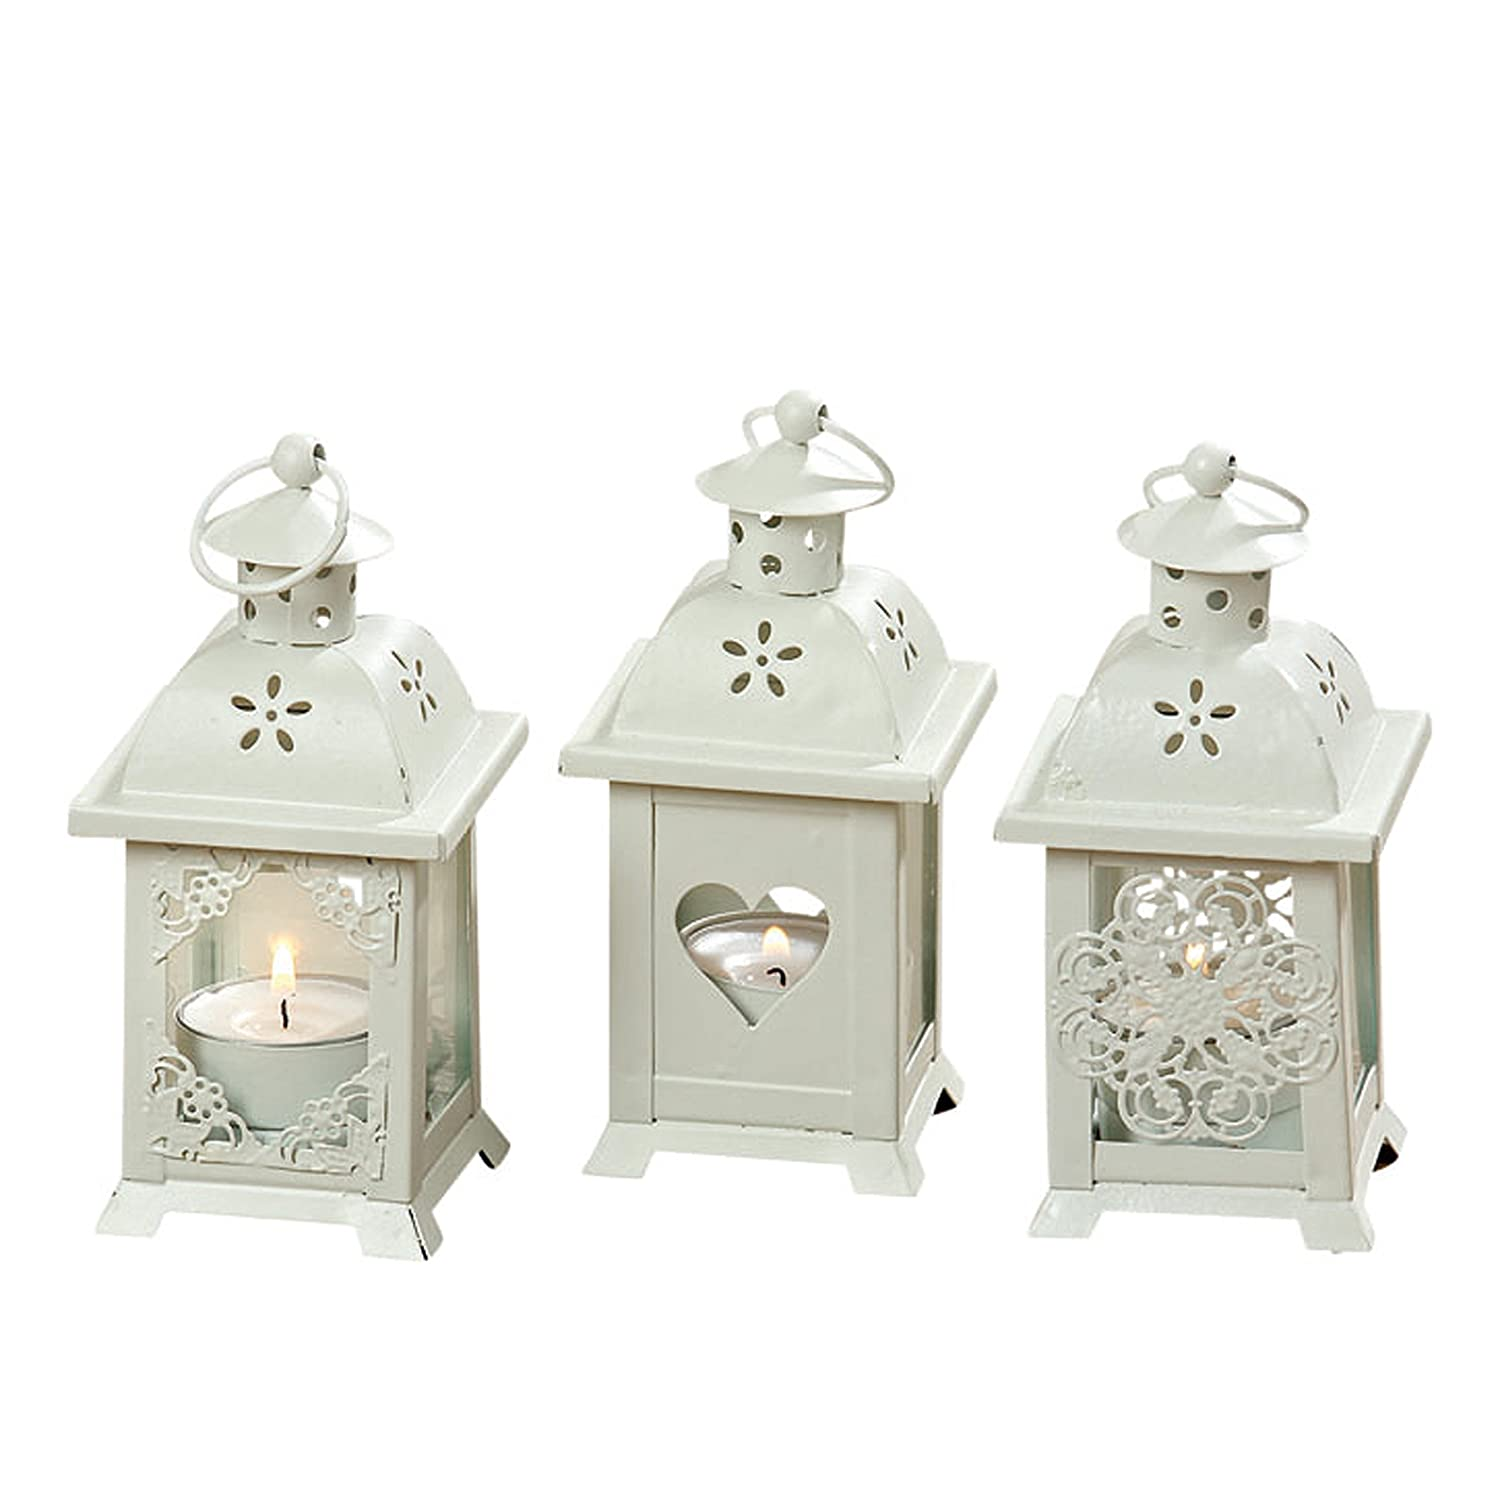 Romantic French Country Style Hearts, Flowers, and Lace LED Tea Light Lanterns Set of 6 | ChristmasTablescapeDecor.com